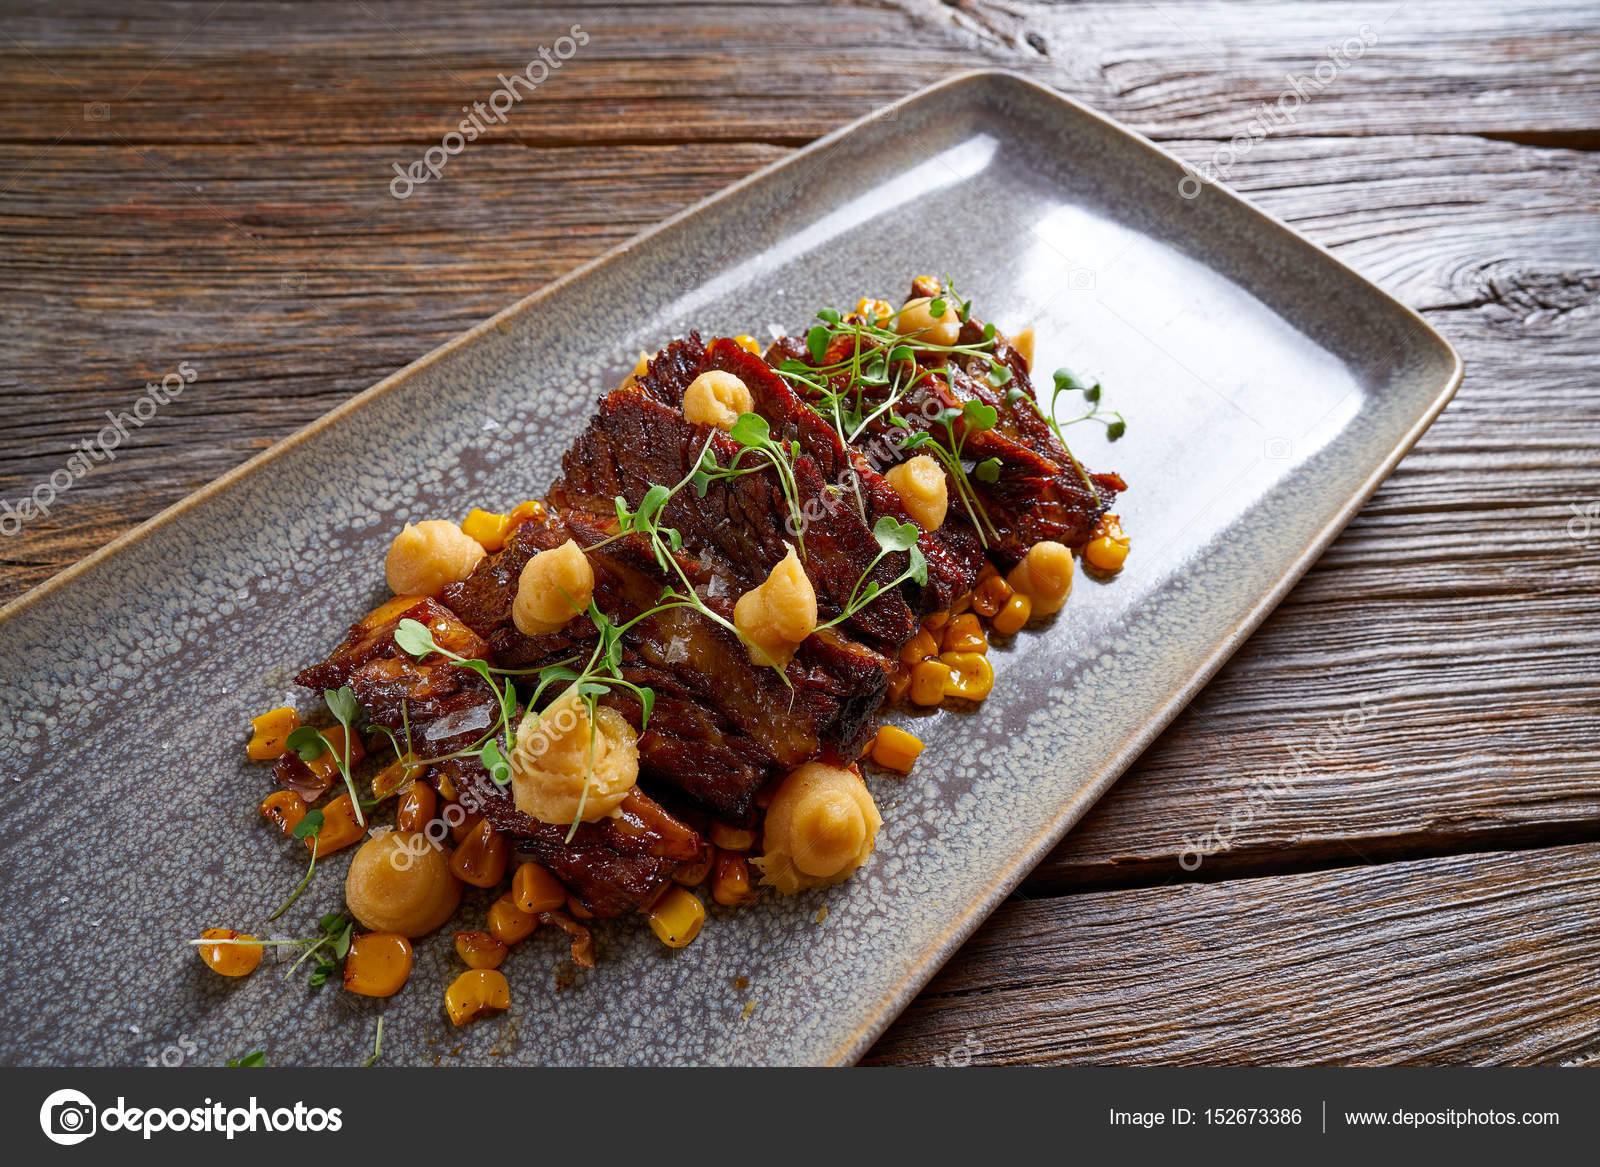 Jacks beef with corn usa recipe stock photo lunamarina 152673386 jacks beef with corn usa recipe stock photo forumfinder Gallery